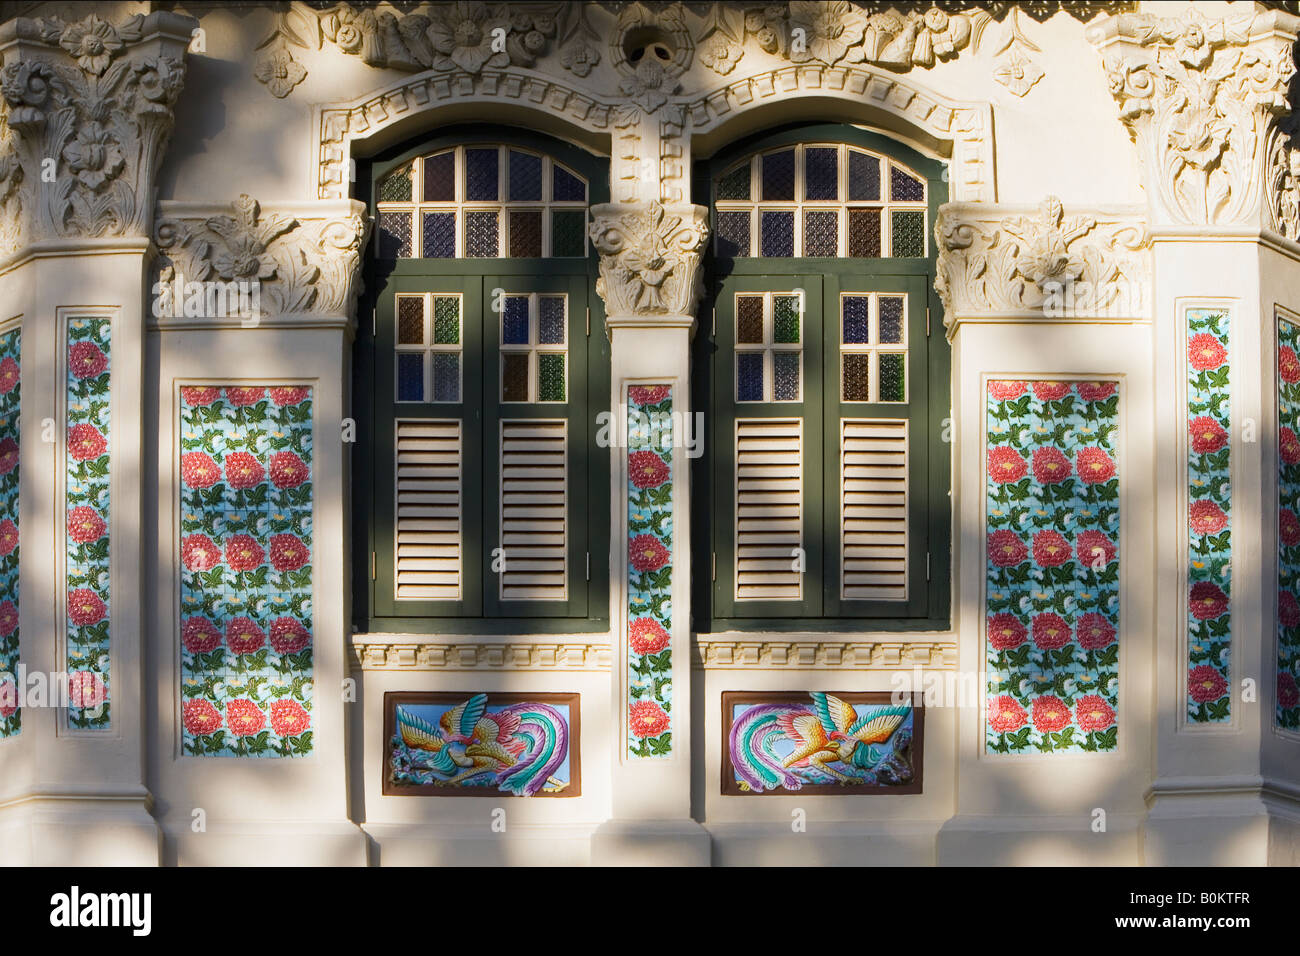 Details on the Front of Traditional Shop House, Singapore - Stock Image